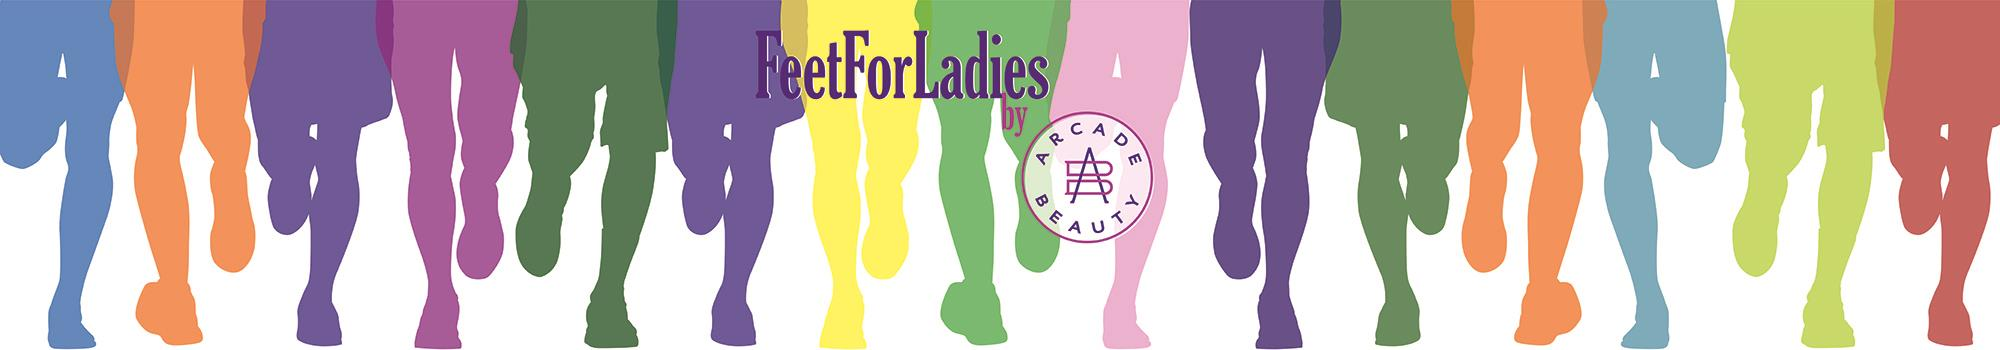 FEET FOR LADIES - Fondation des Femmes